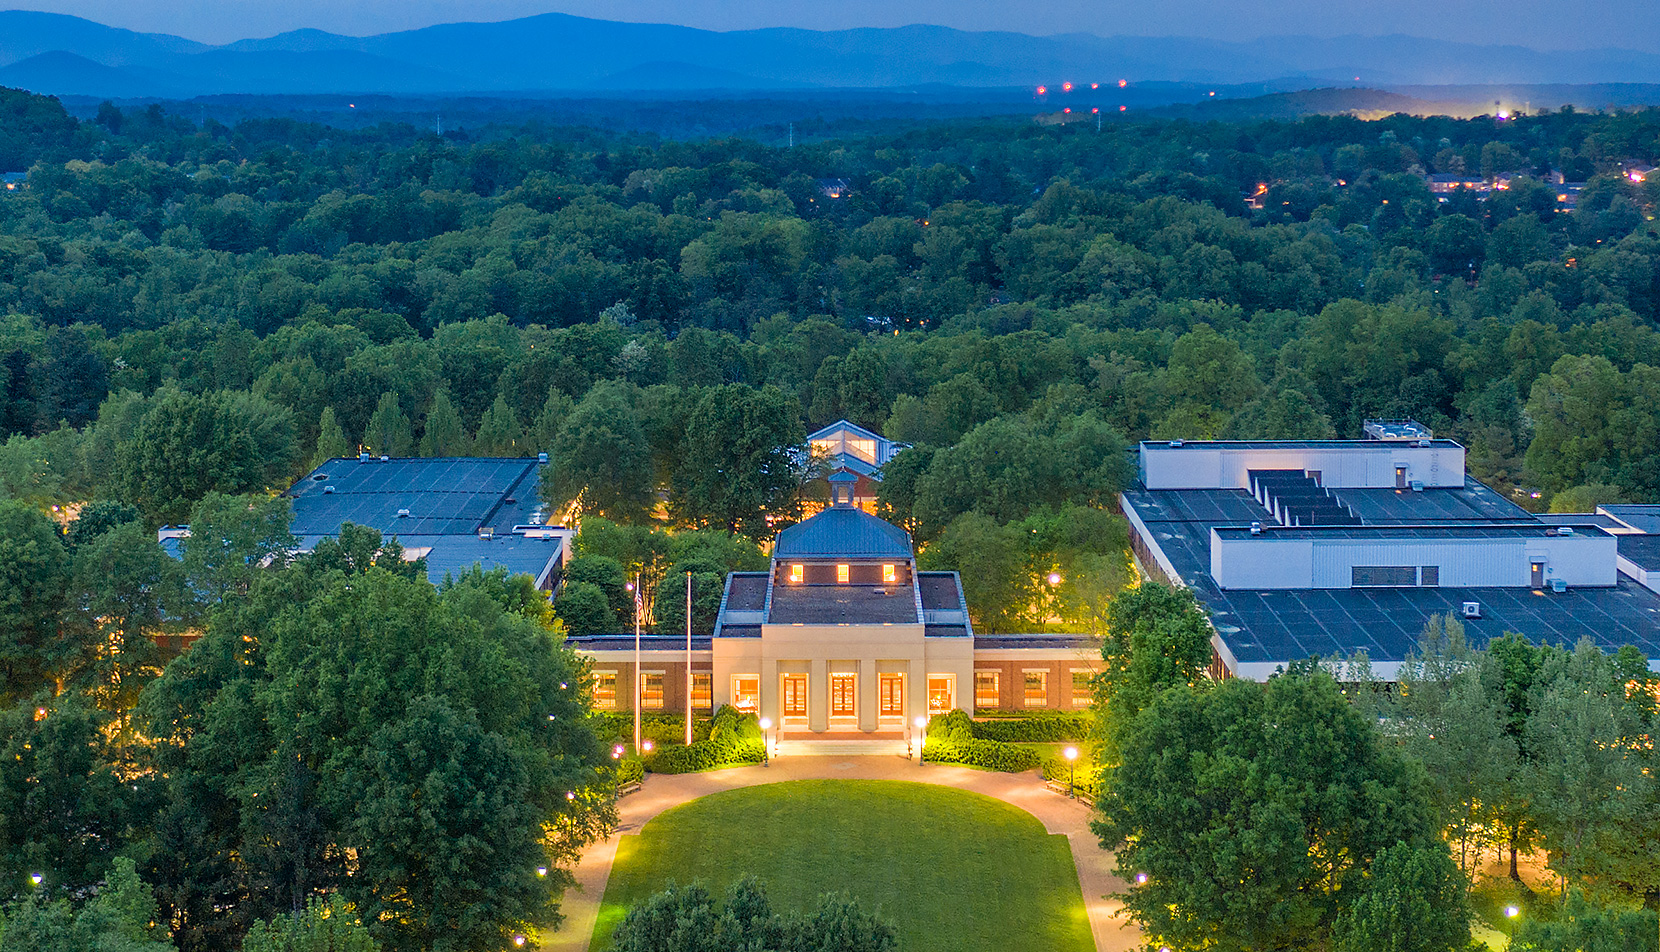 Aerial view of UVA Law